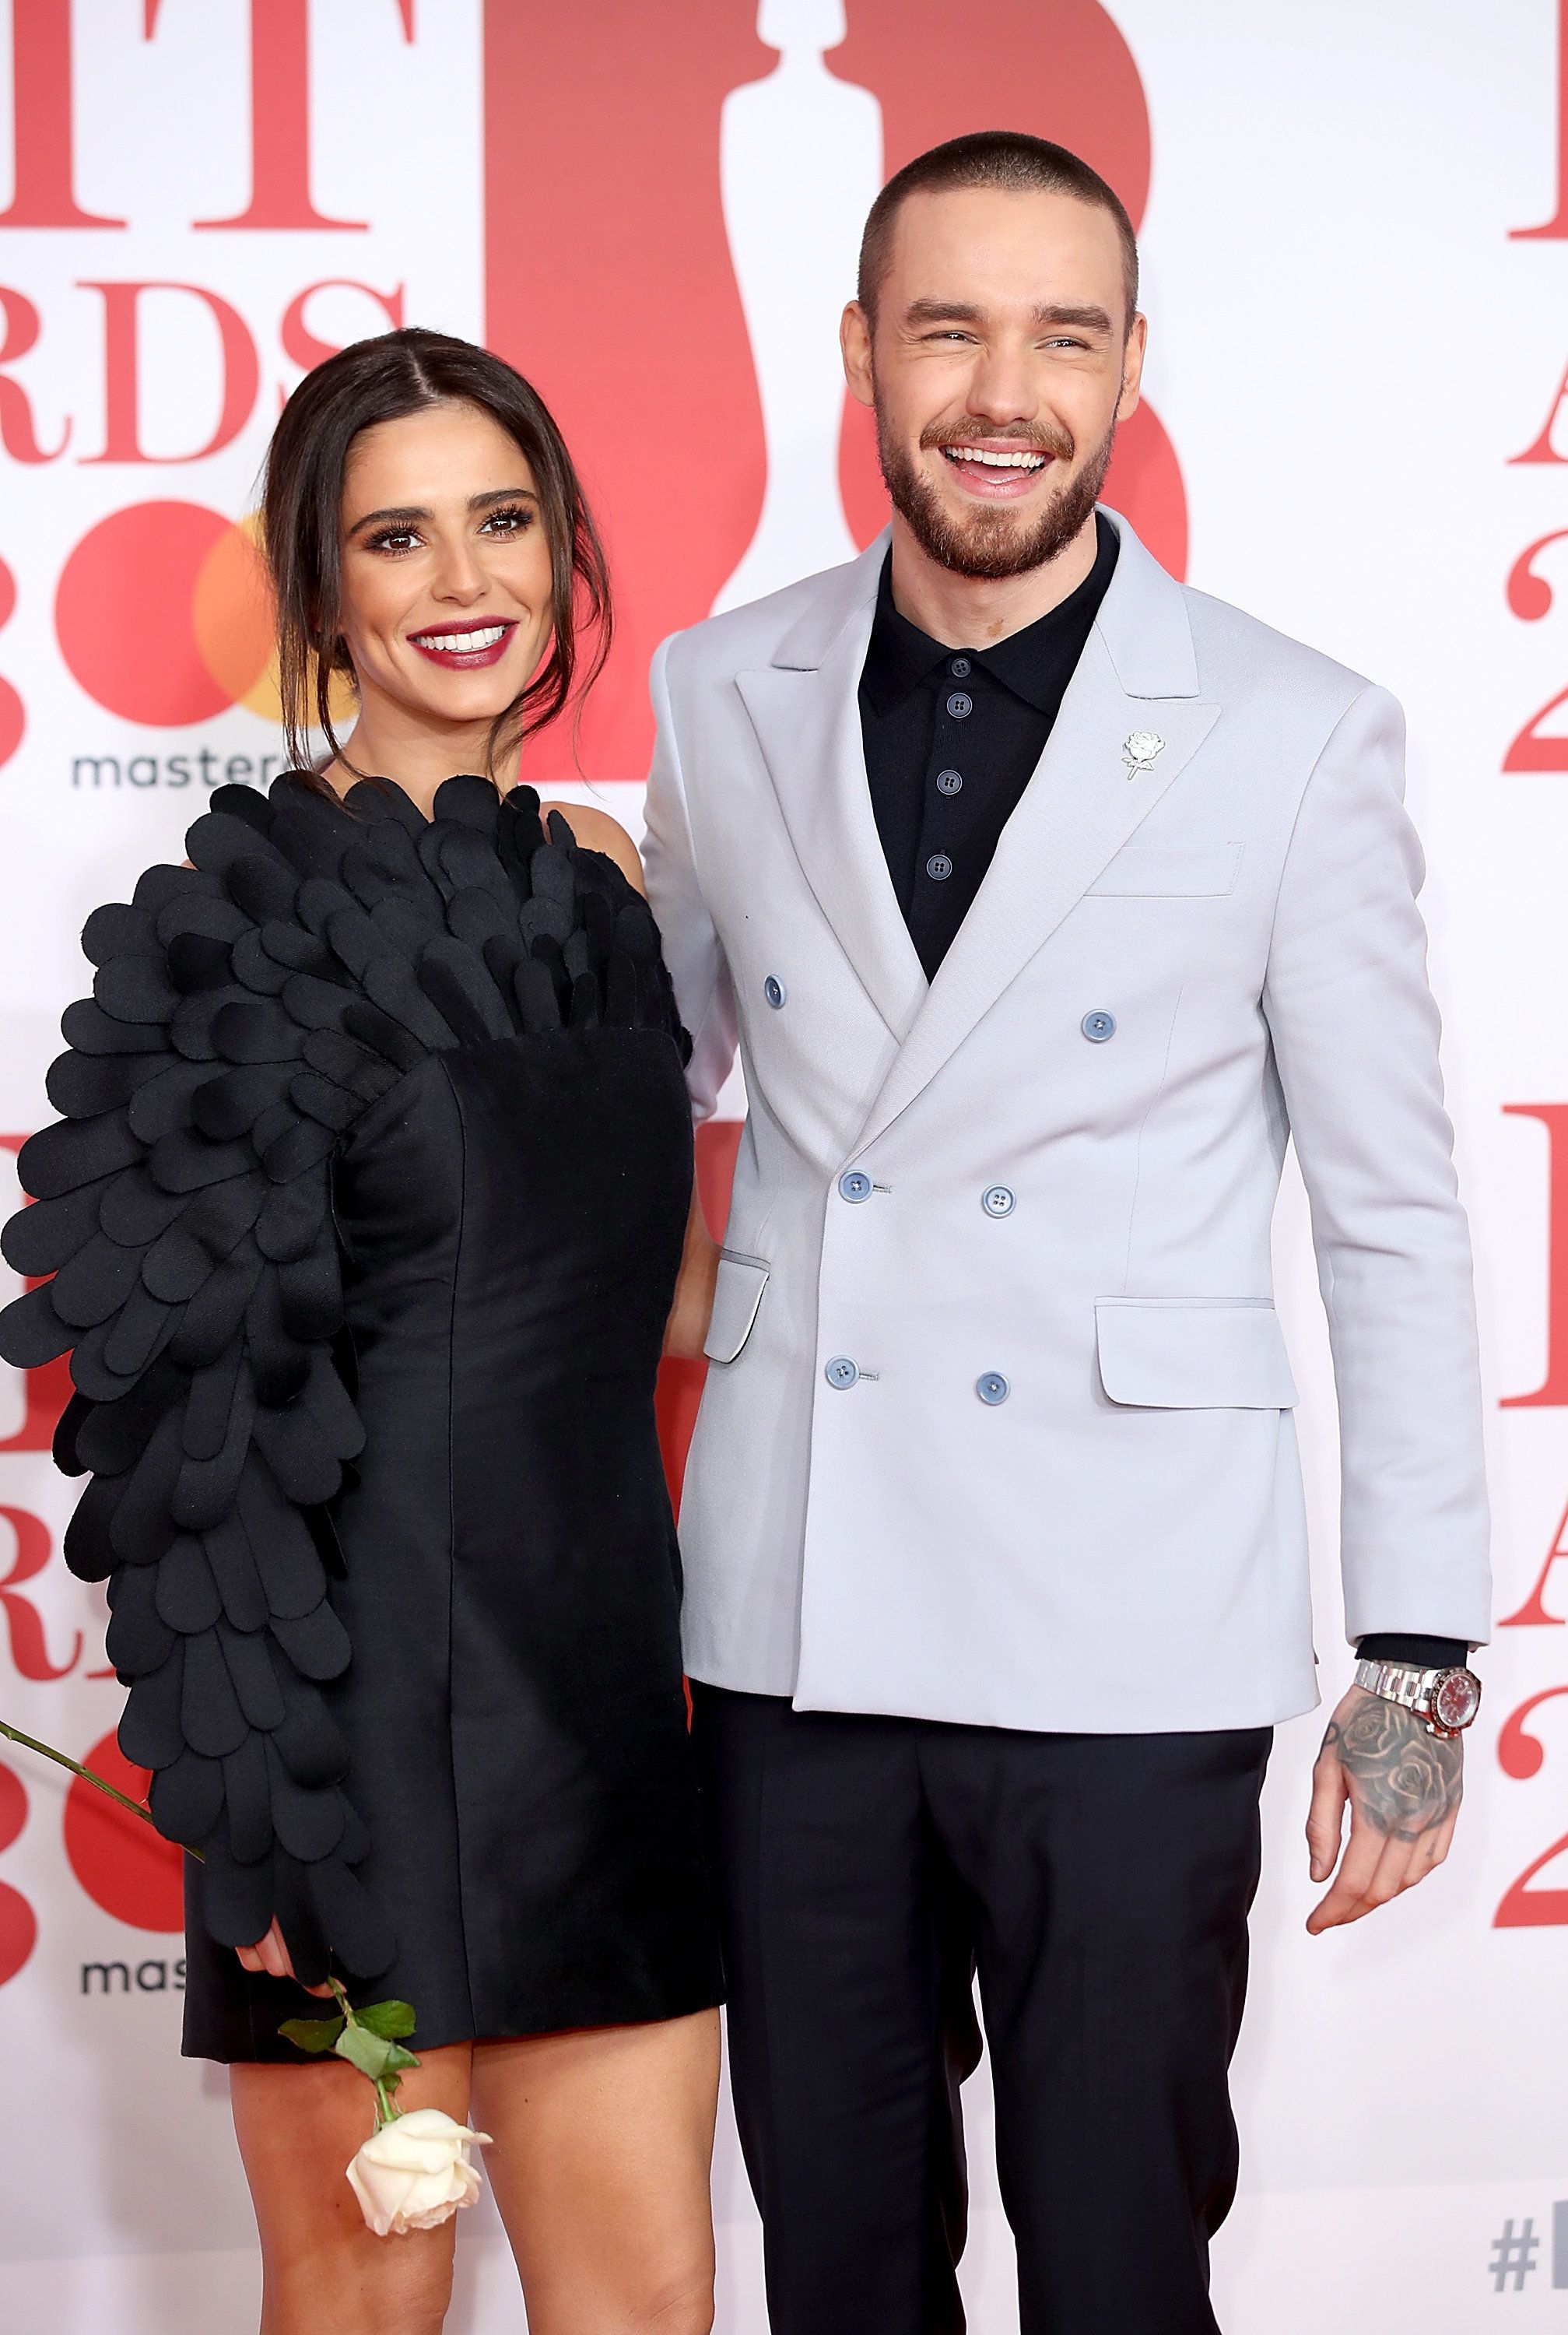 Cheryl And Liam Silence Split Rumours With Display Of Unity At Brit